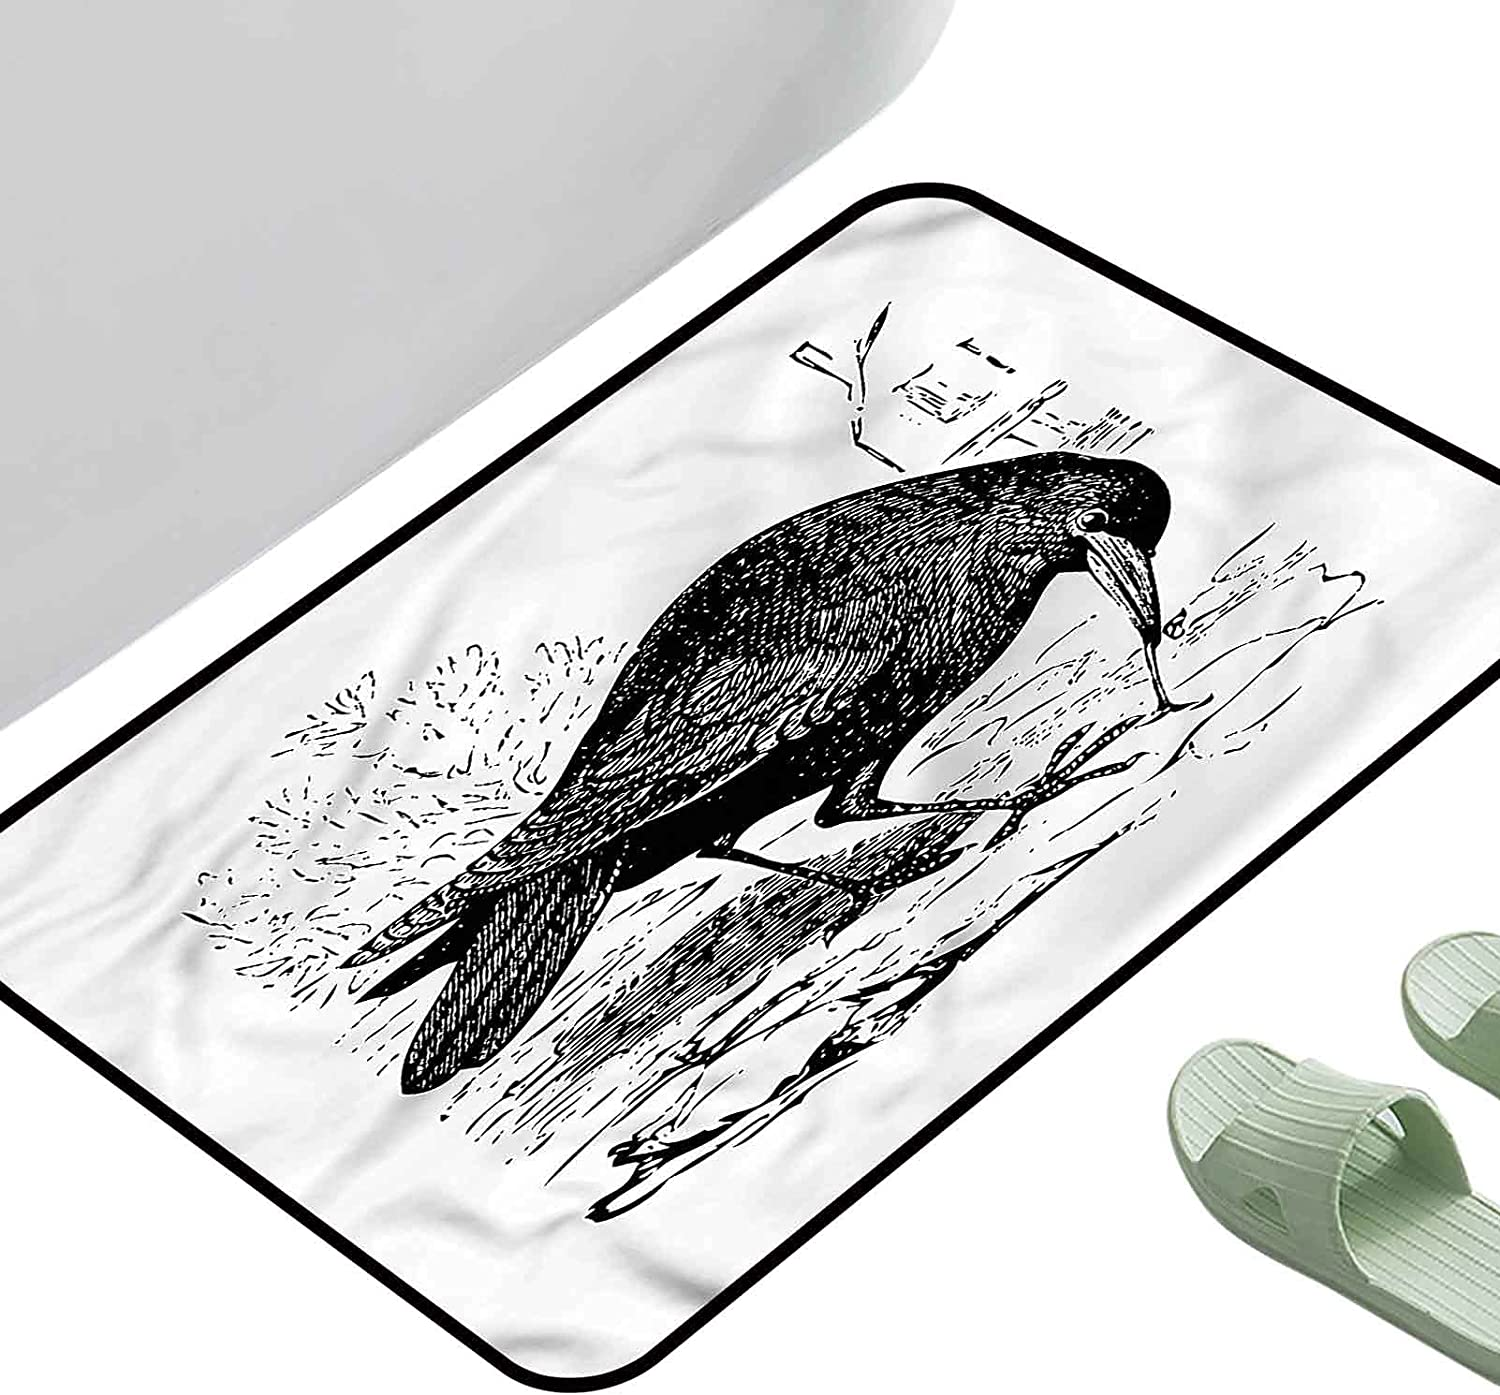 Floor Mats Modern Challenge the lowest price of Japan New Shipping Free Shipping Kitchen Rug Raven Design Figure Sketch 35 Bird